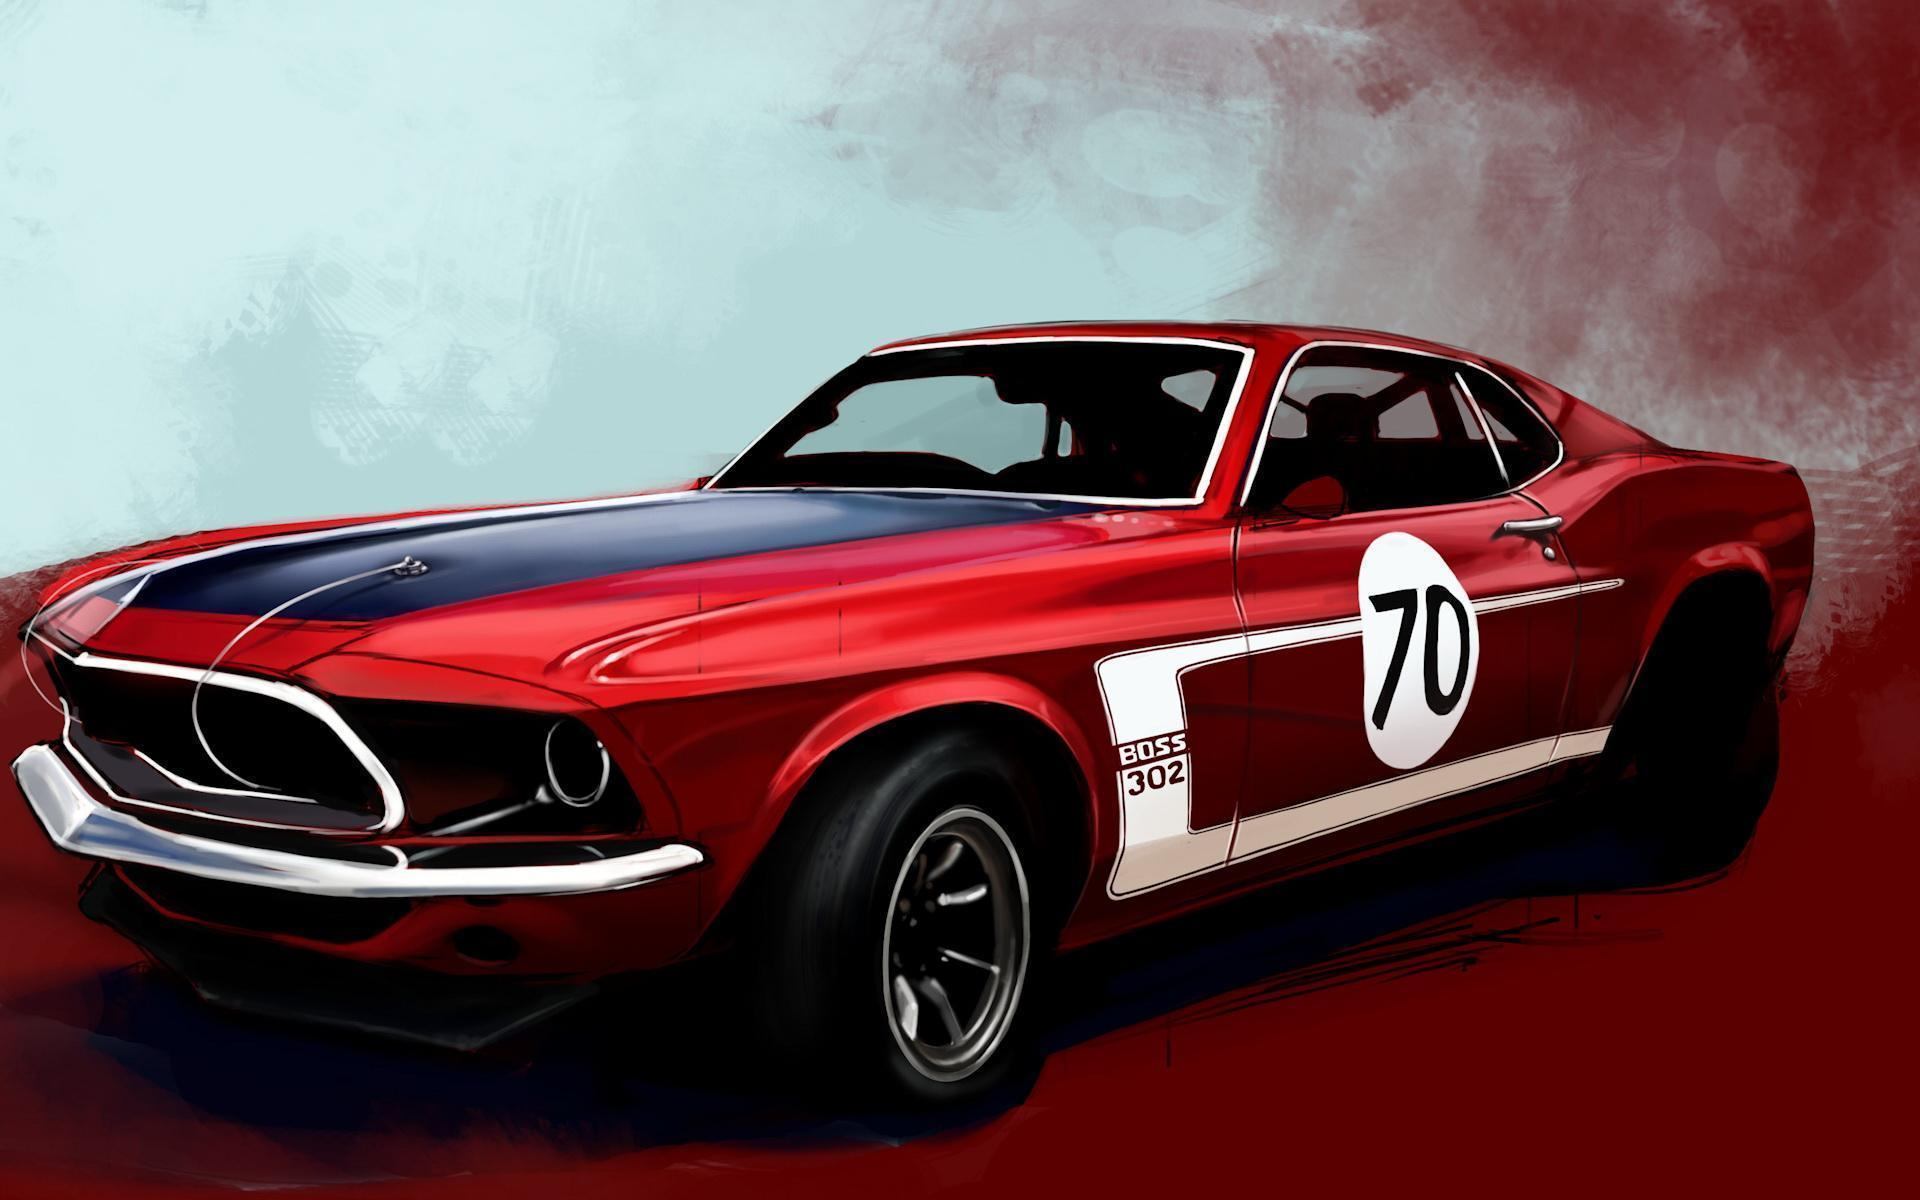 Muscle Car Wallpapers - Full HD wallpaper search - page 2